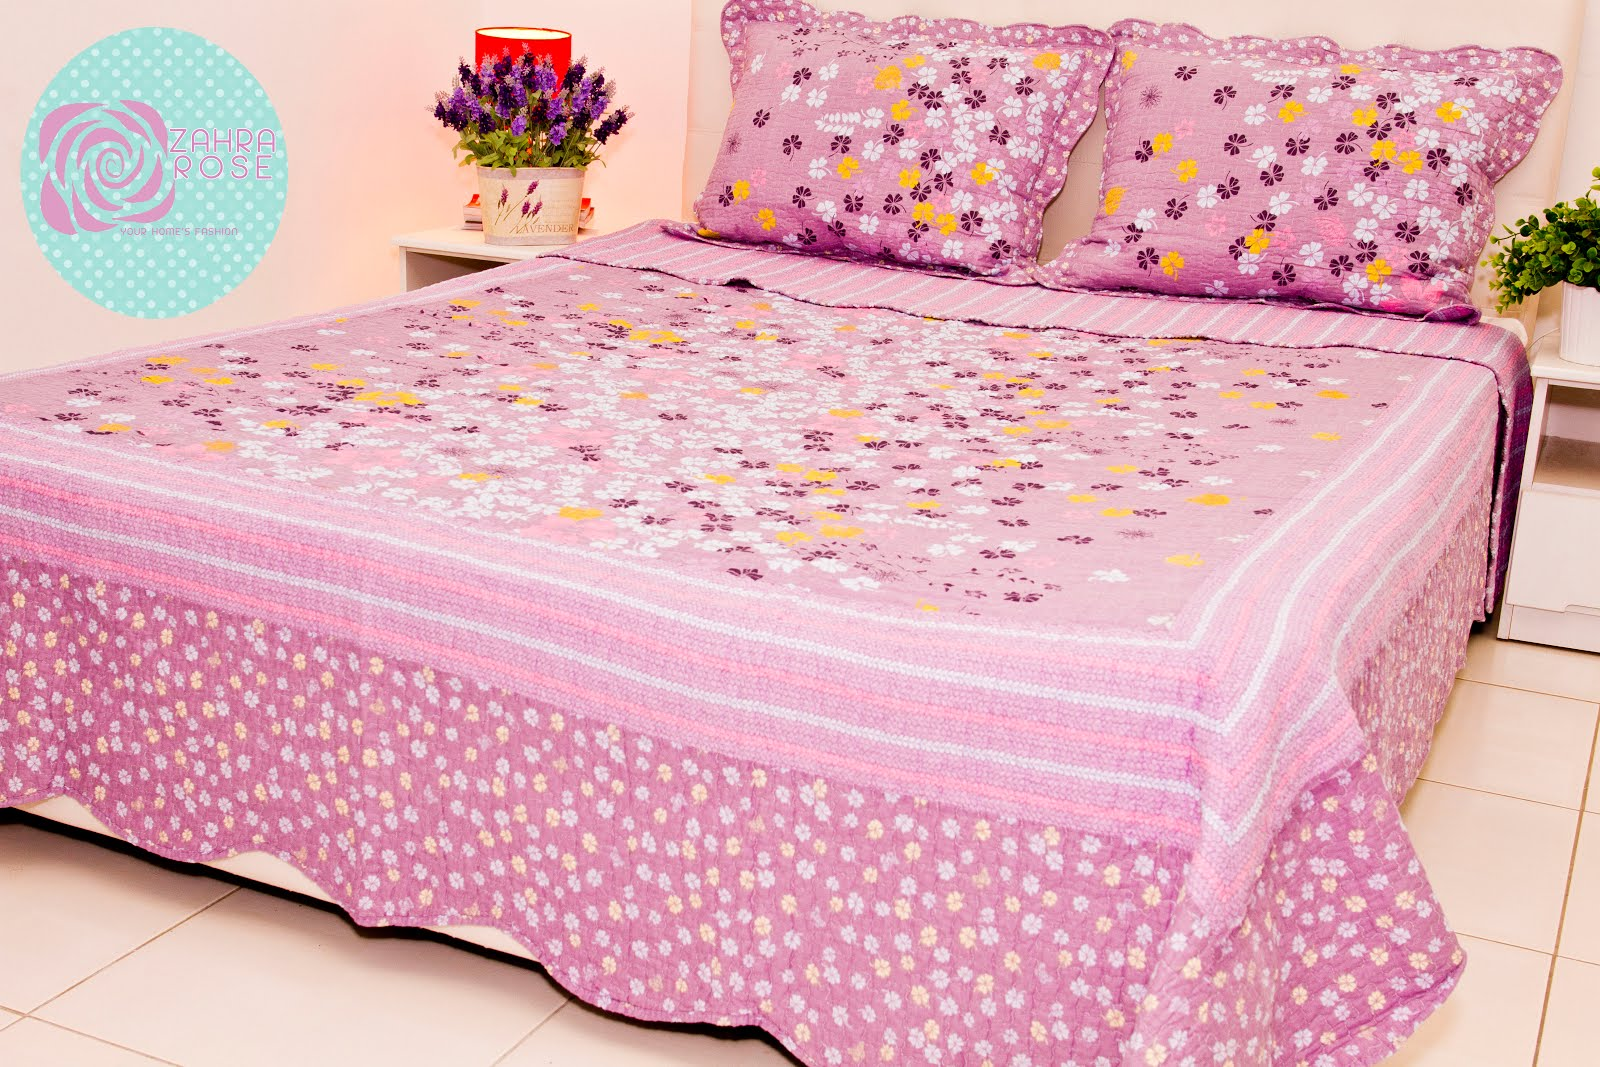 Patchwork bed sheets patterns - Zr 003